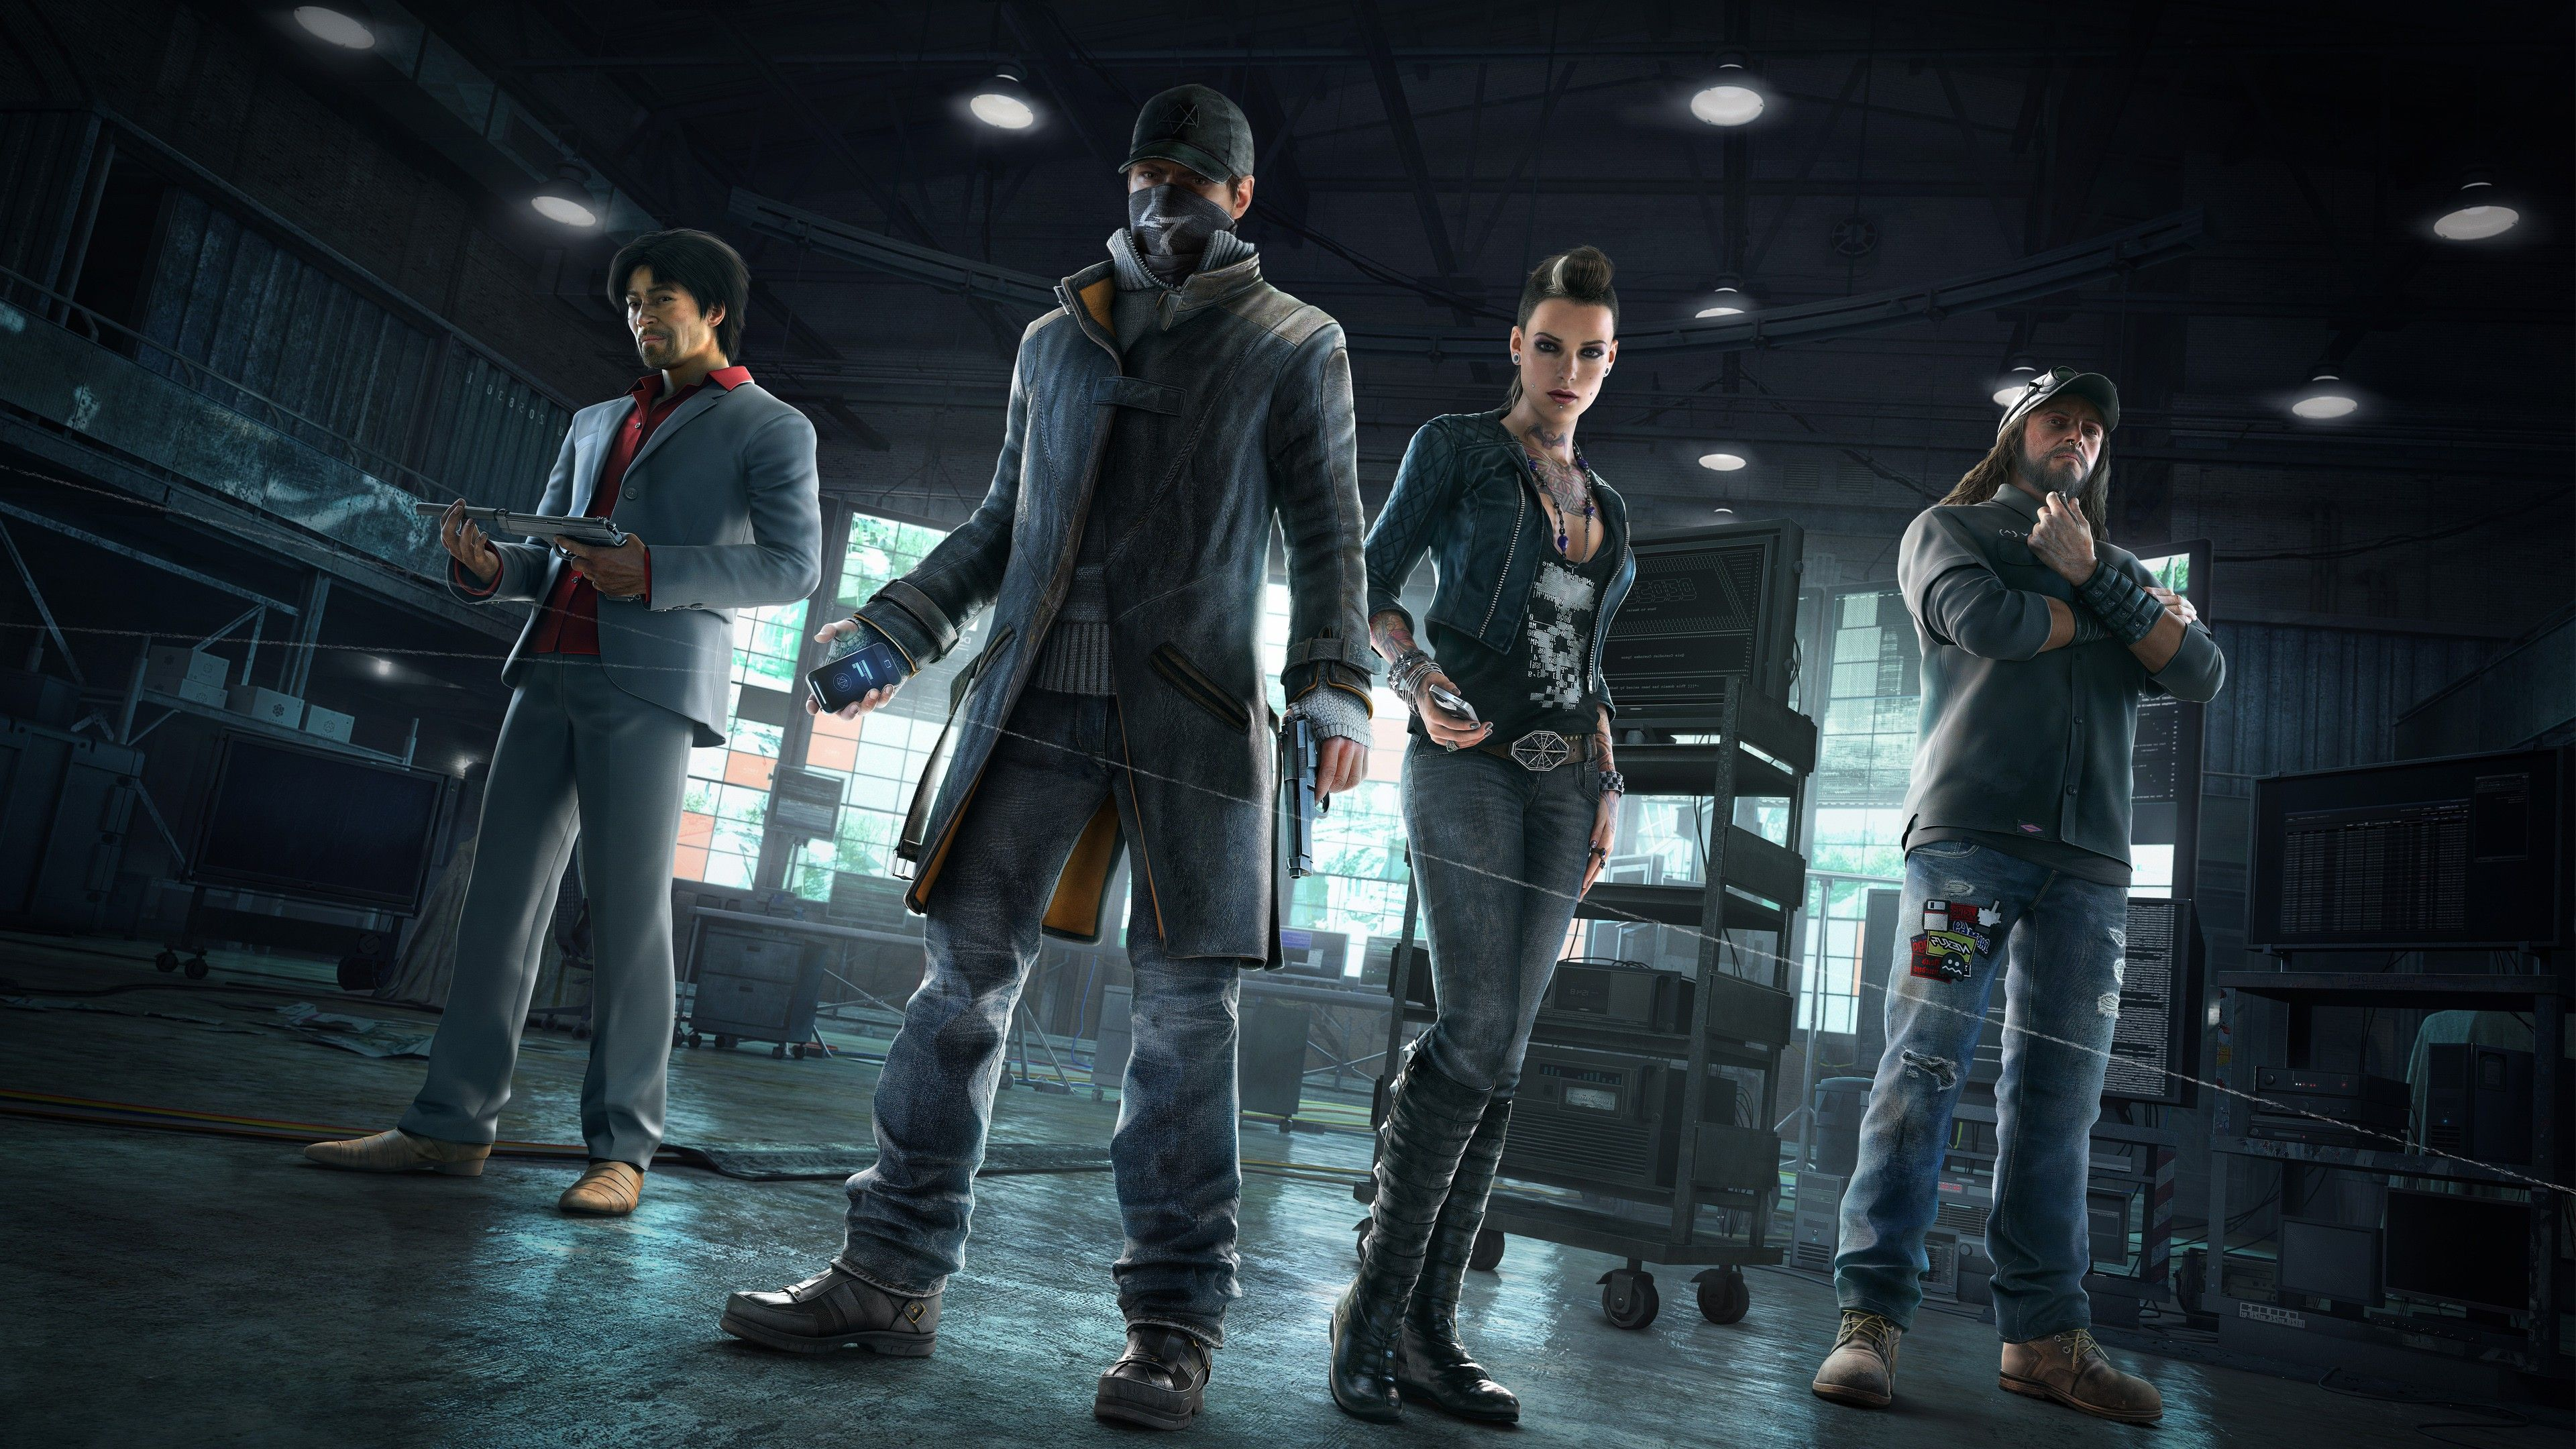 Watch Dogs 2 4k Hd Wallpapers Watch Dogs Pc Games Wallpapers Dog Wallpaper